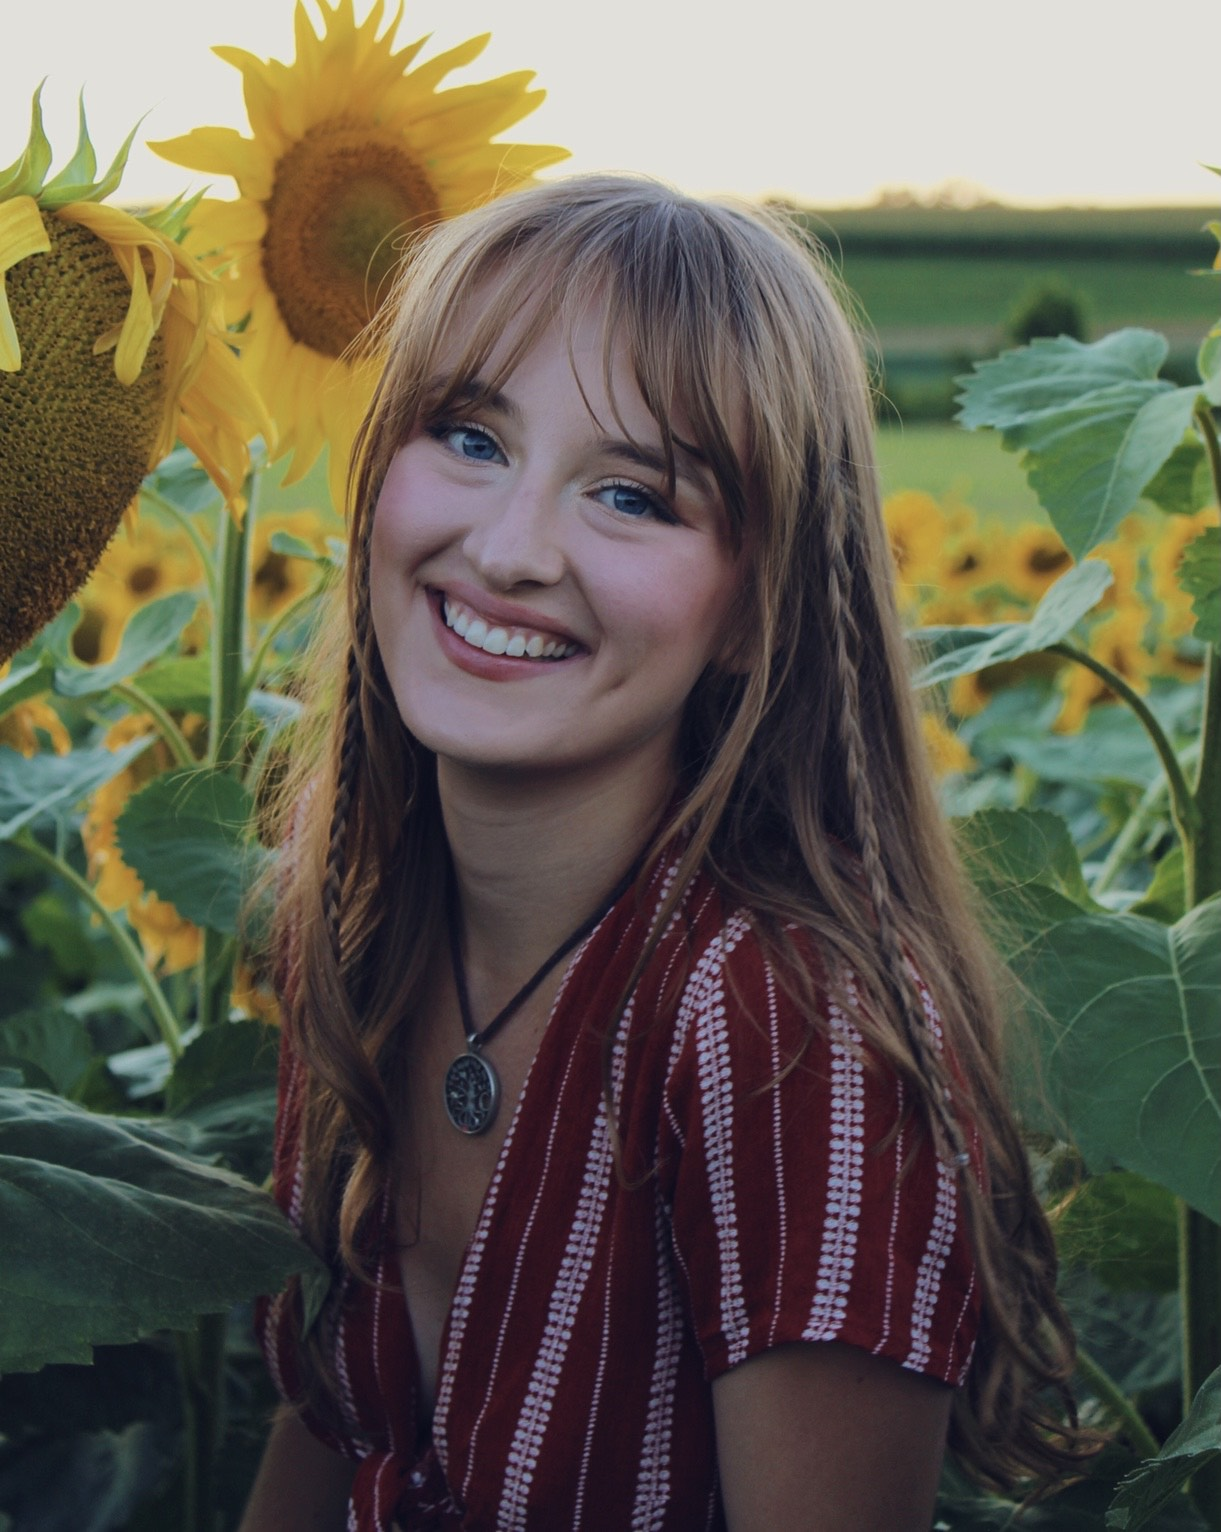 A headshot of Isabelle Anderson in a field of sunflowers.